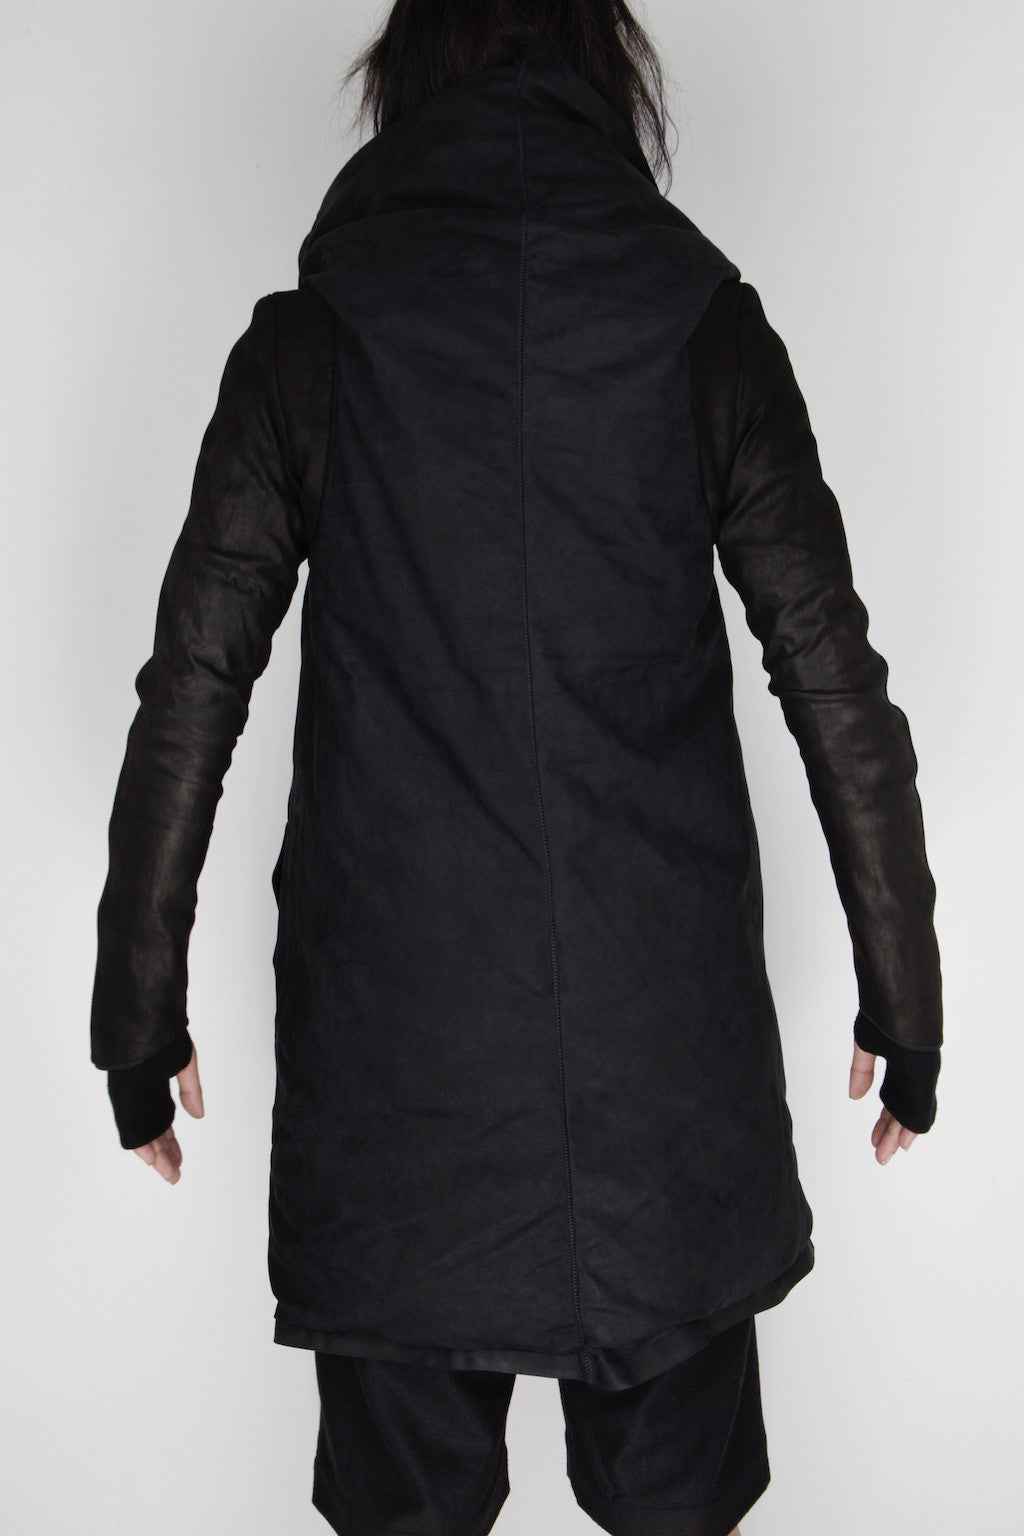 black quadri jacket